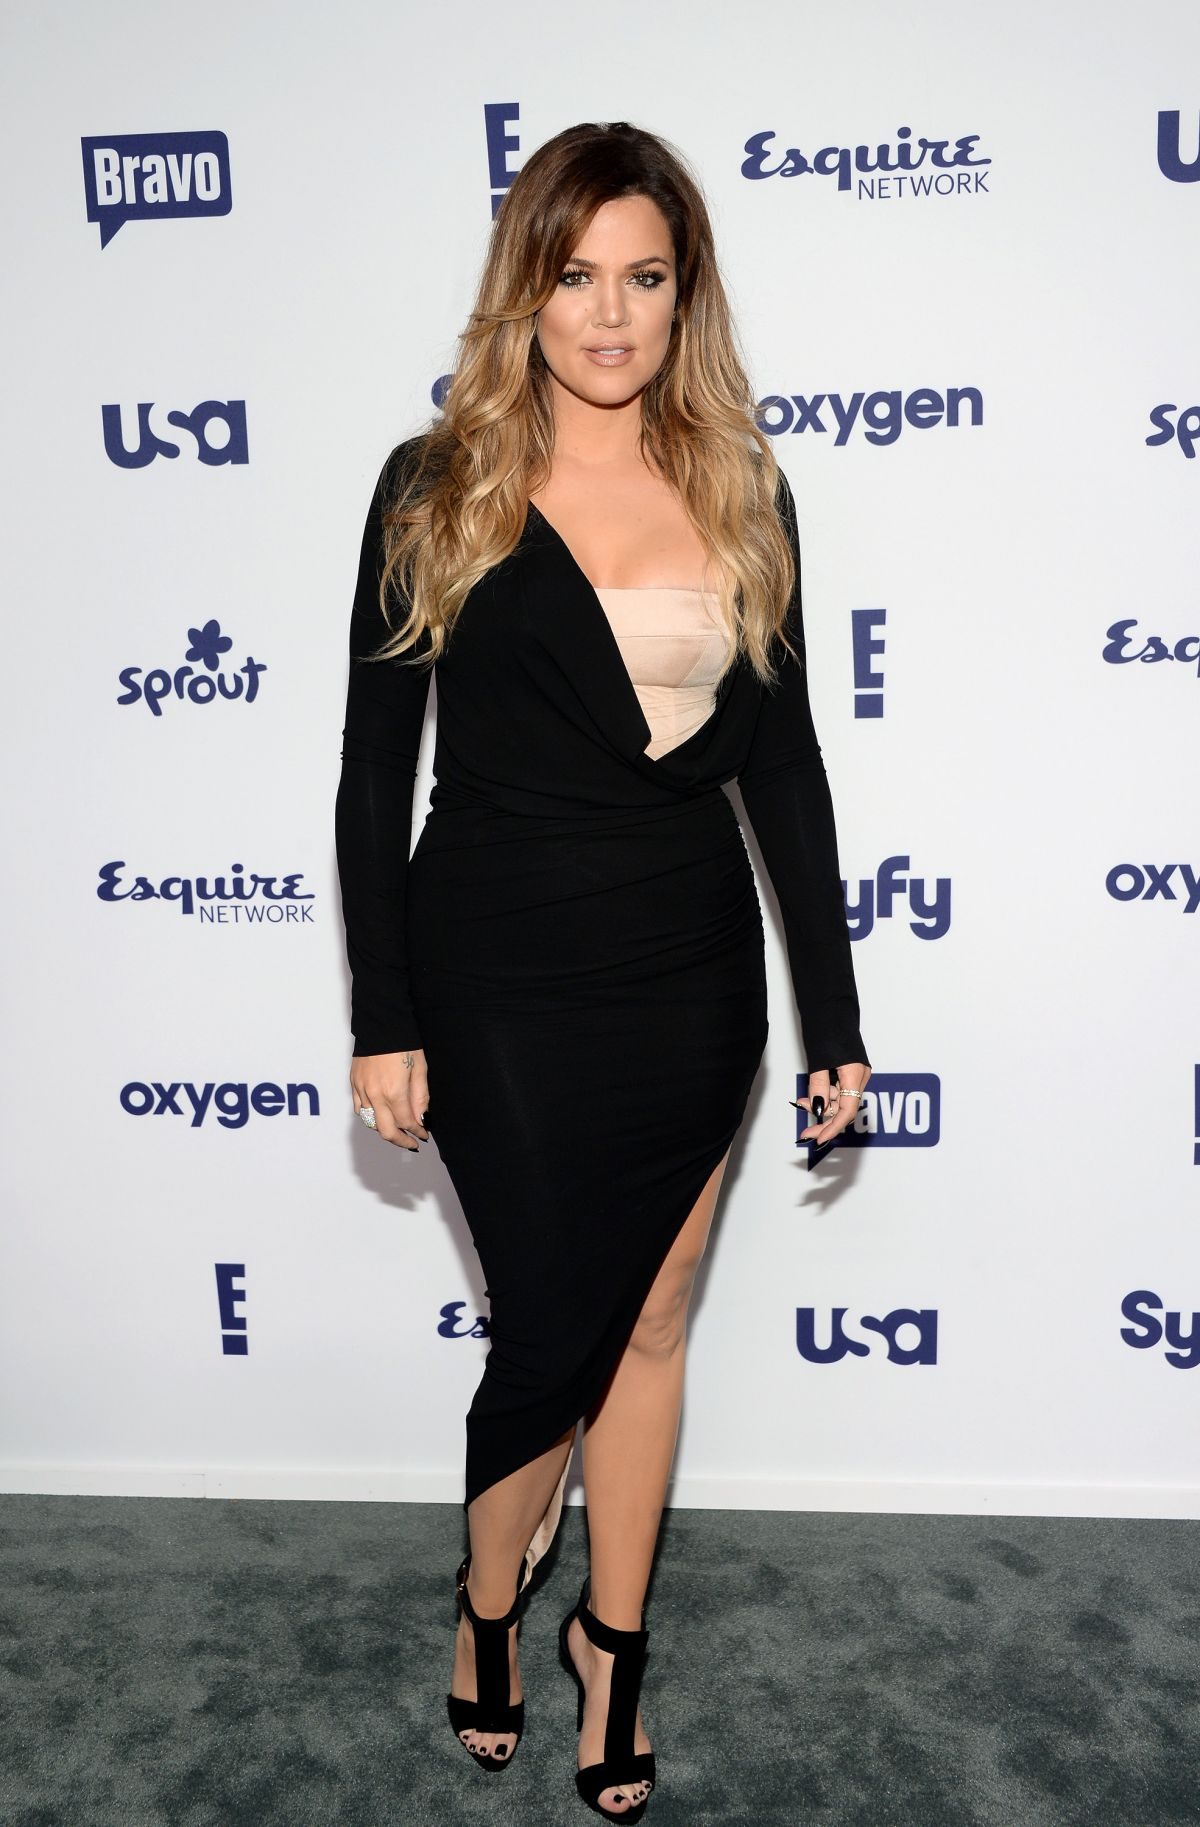 Khloe Kardashian At Nbc Universal Cable Entertainment